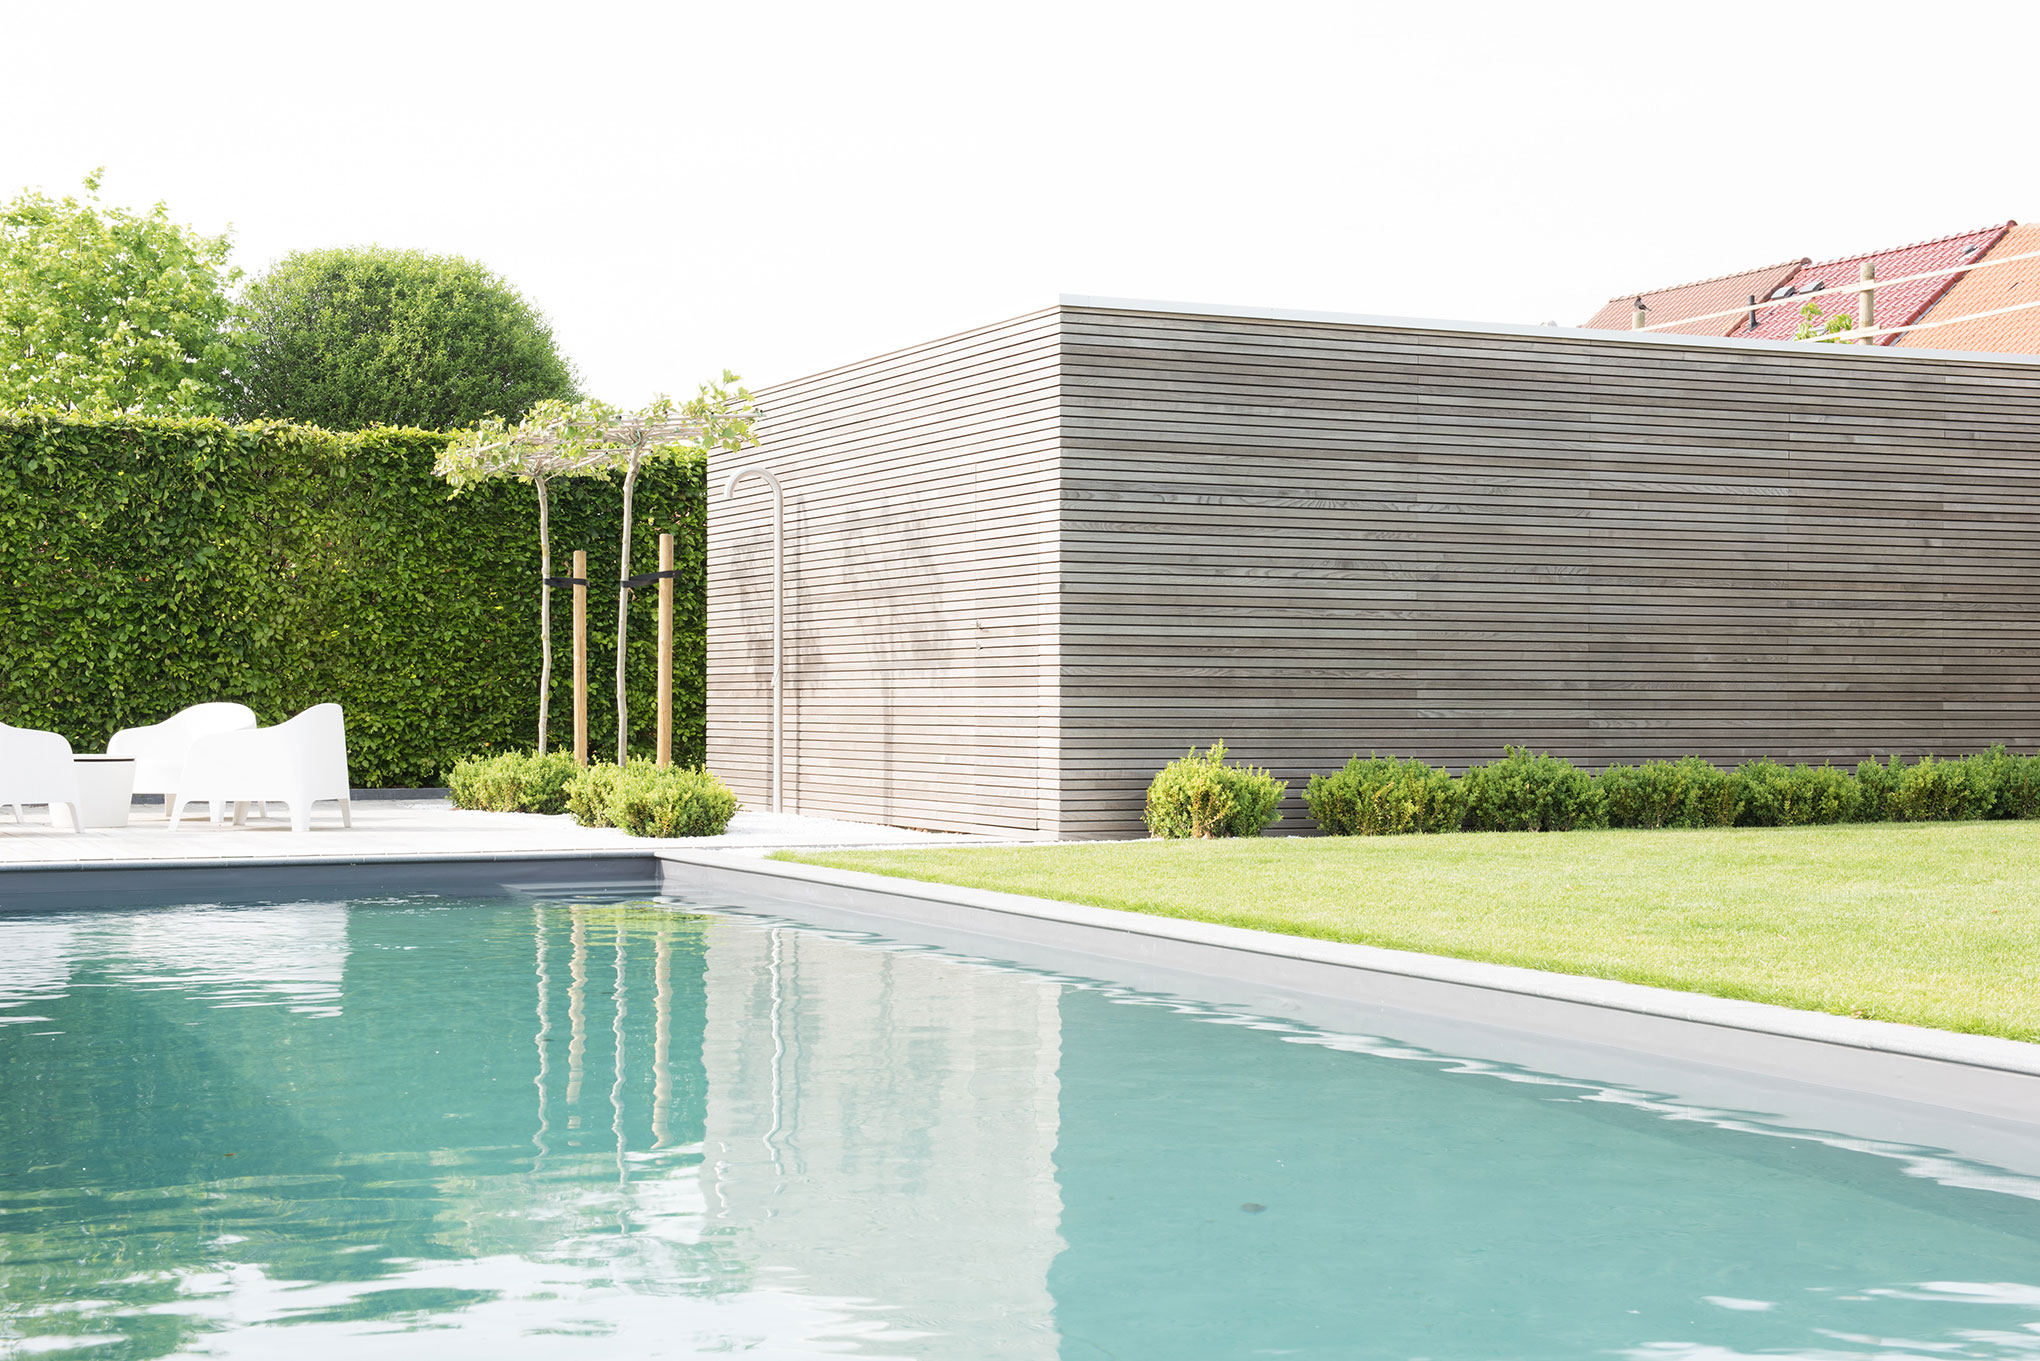 Minimalist pool house and garden storage shed, Merchtem | Livinlodge